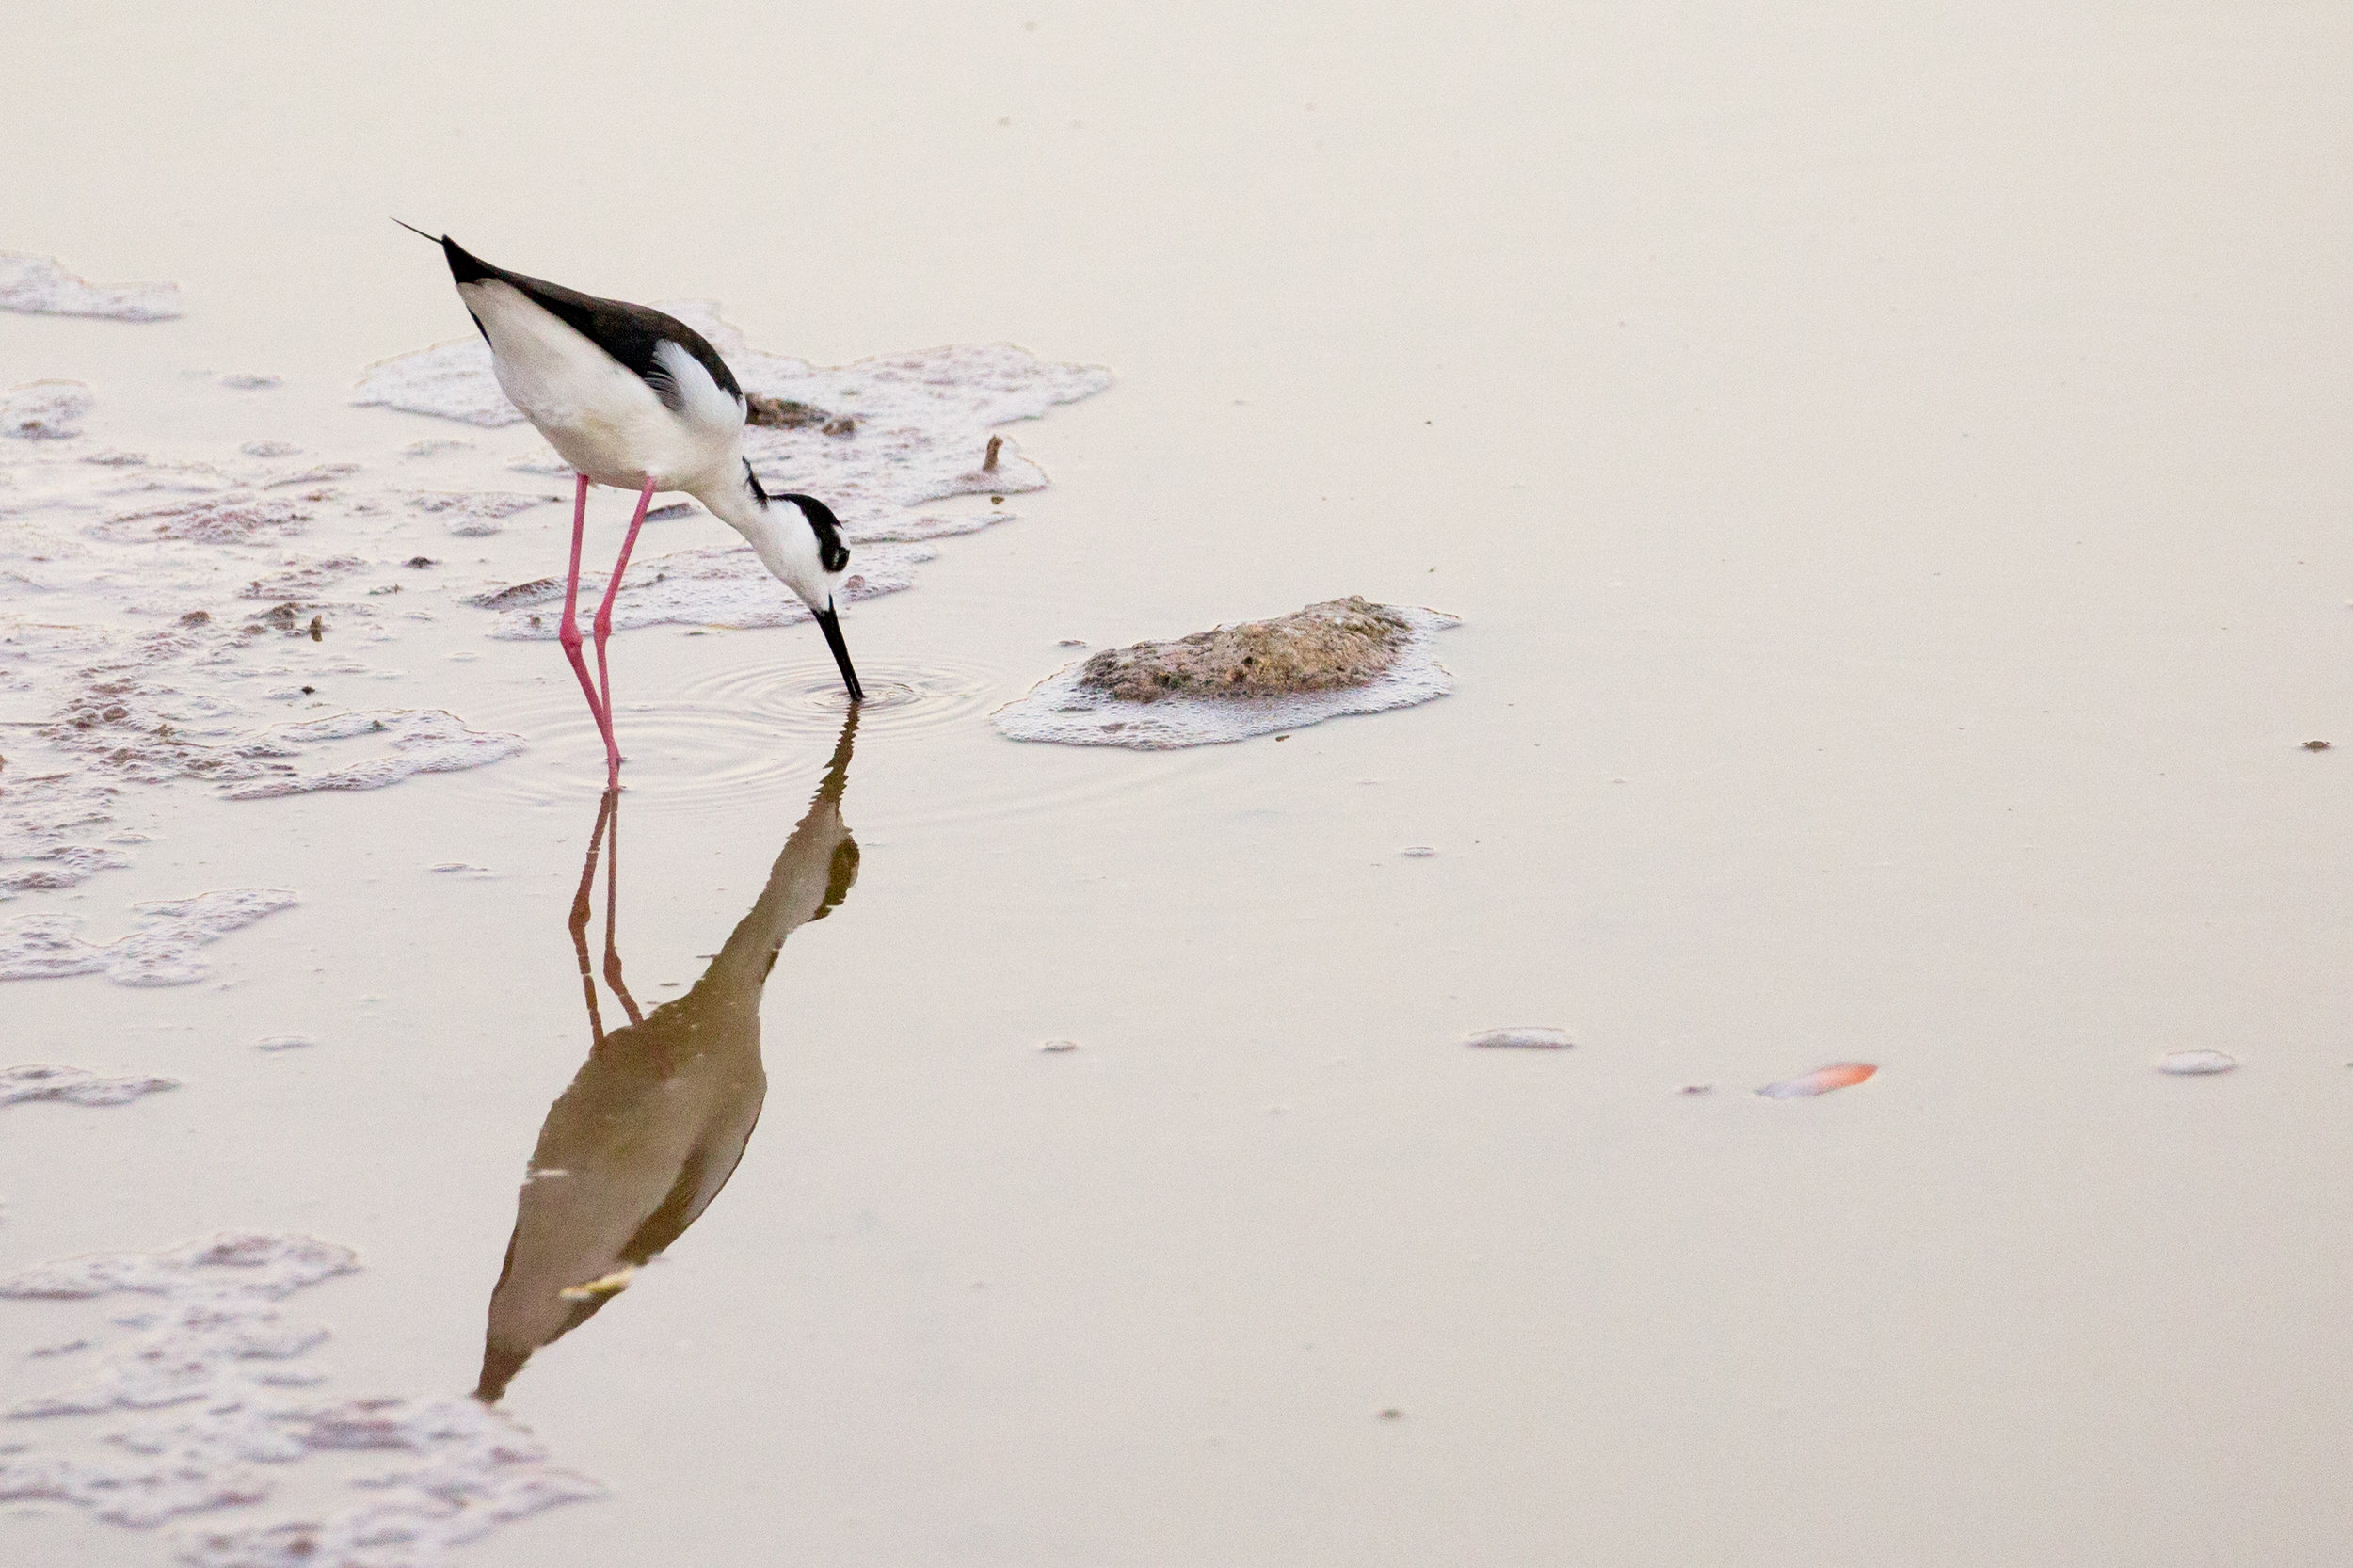 A traveler along the coasts of the Americas, the Black-necked stilt is a rarer occurrence in the Galapagos